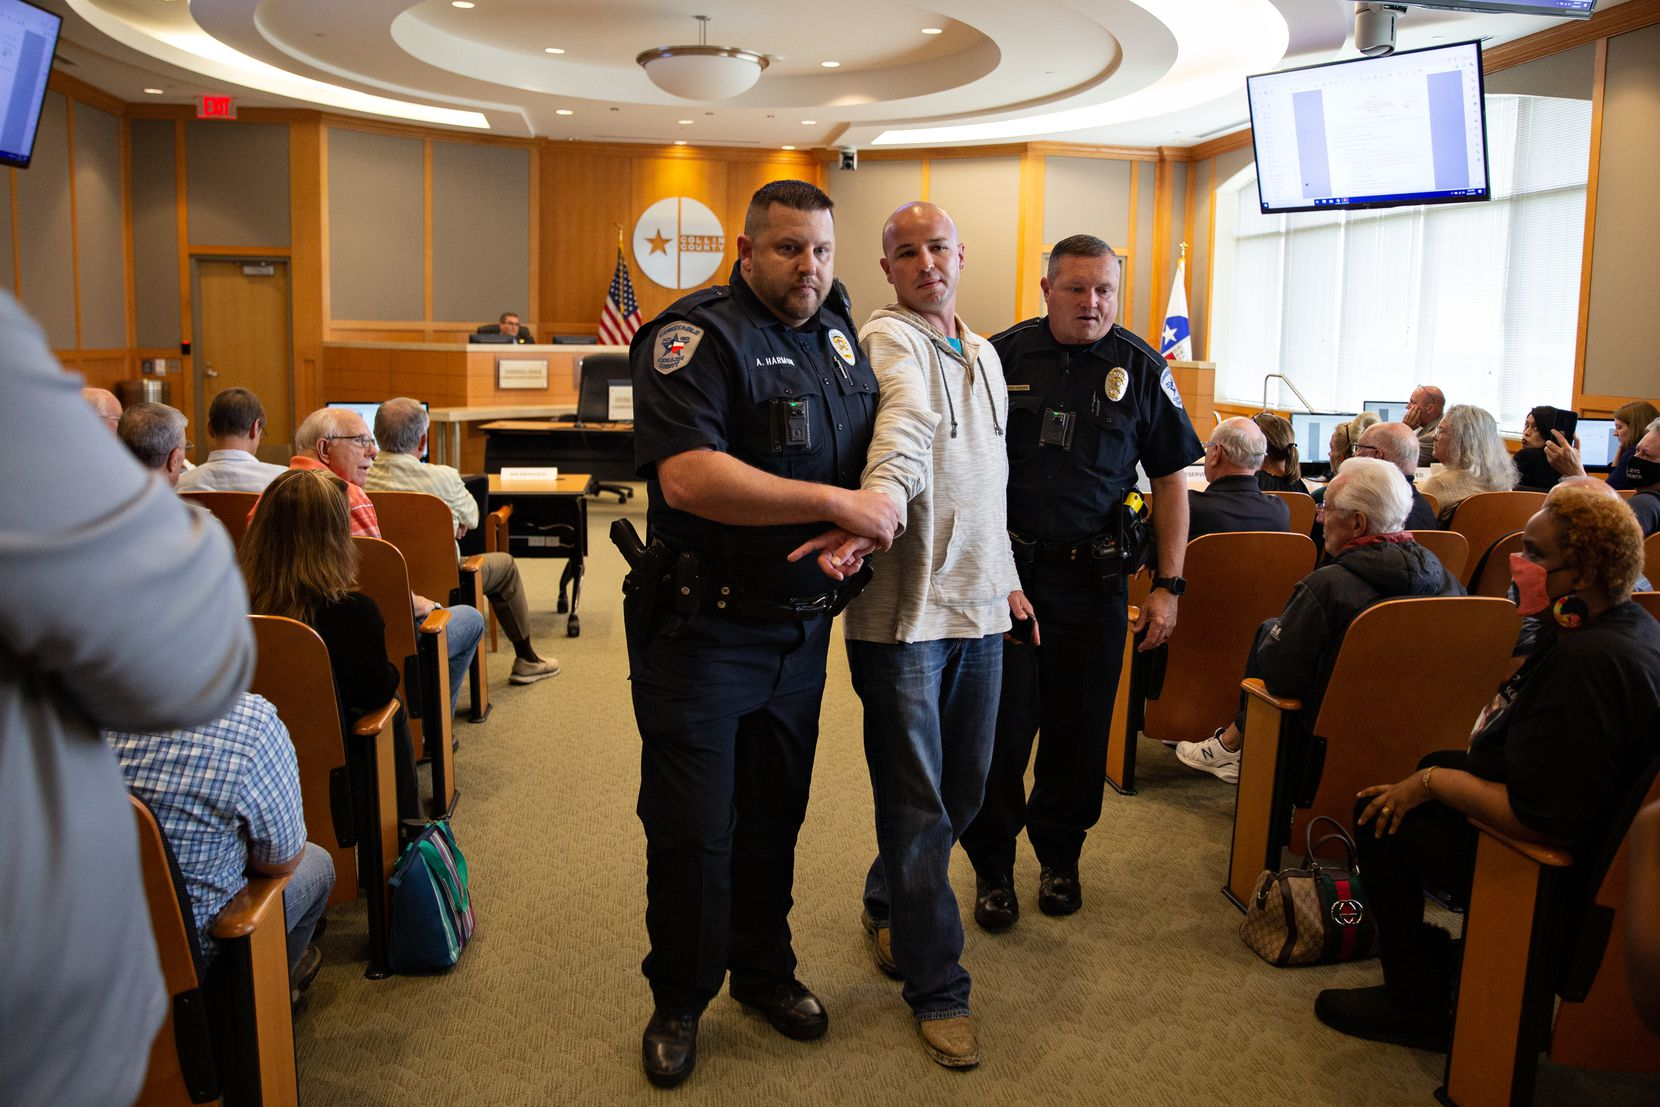 Joshua Murray is escorted out of the Collin County Commissioners Court meeting by police after being ruled in contempt.